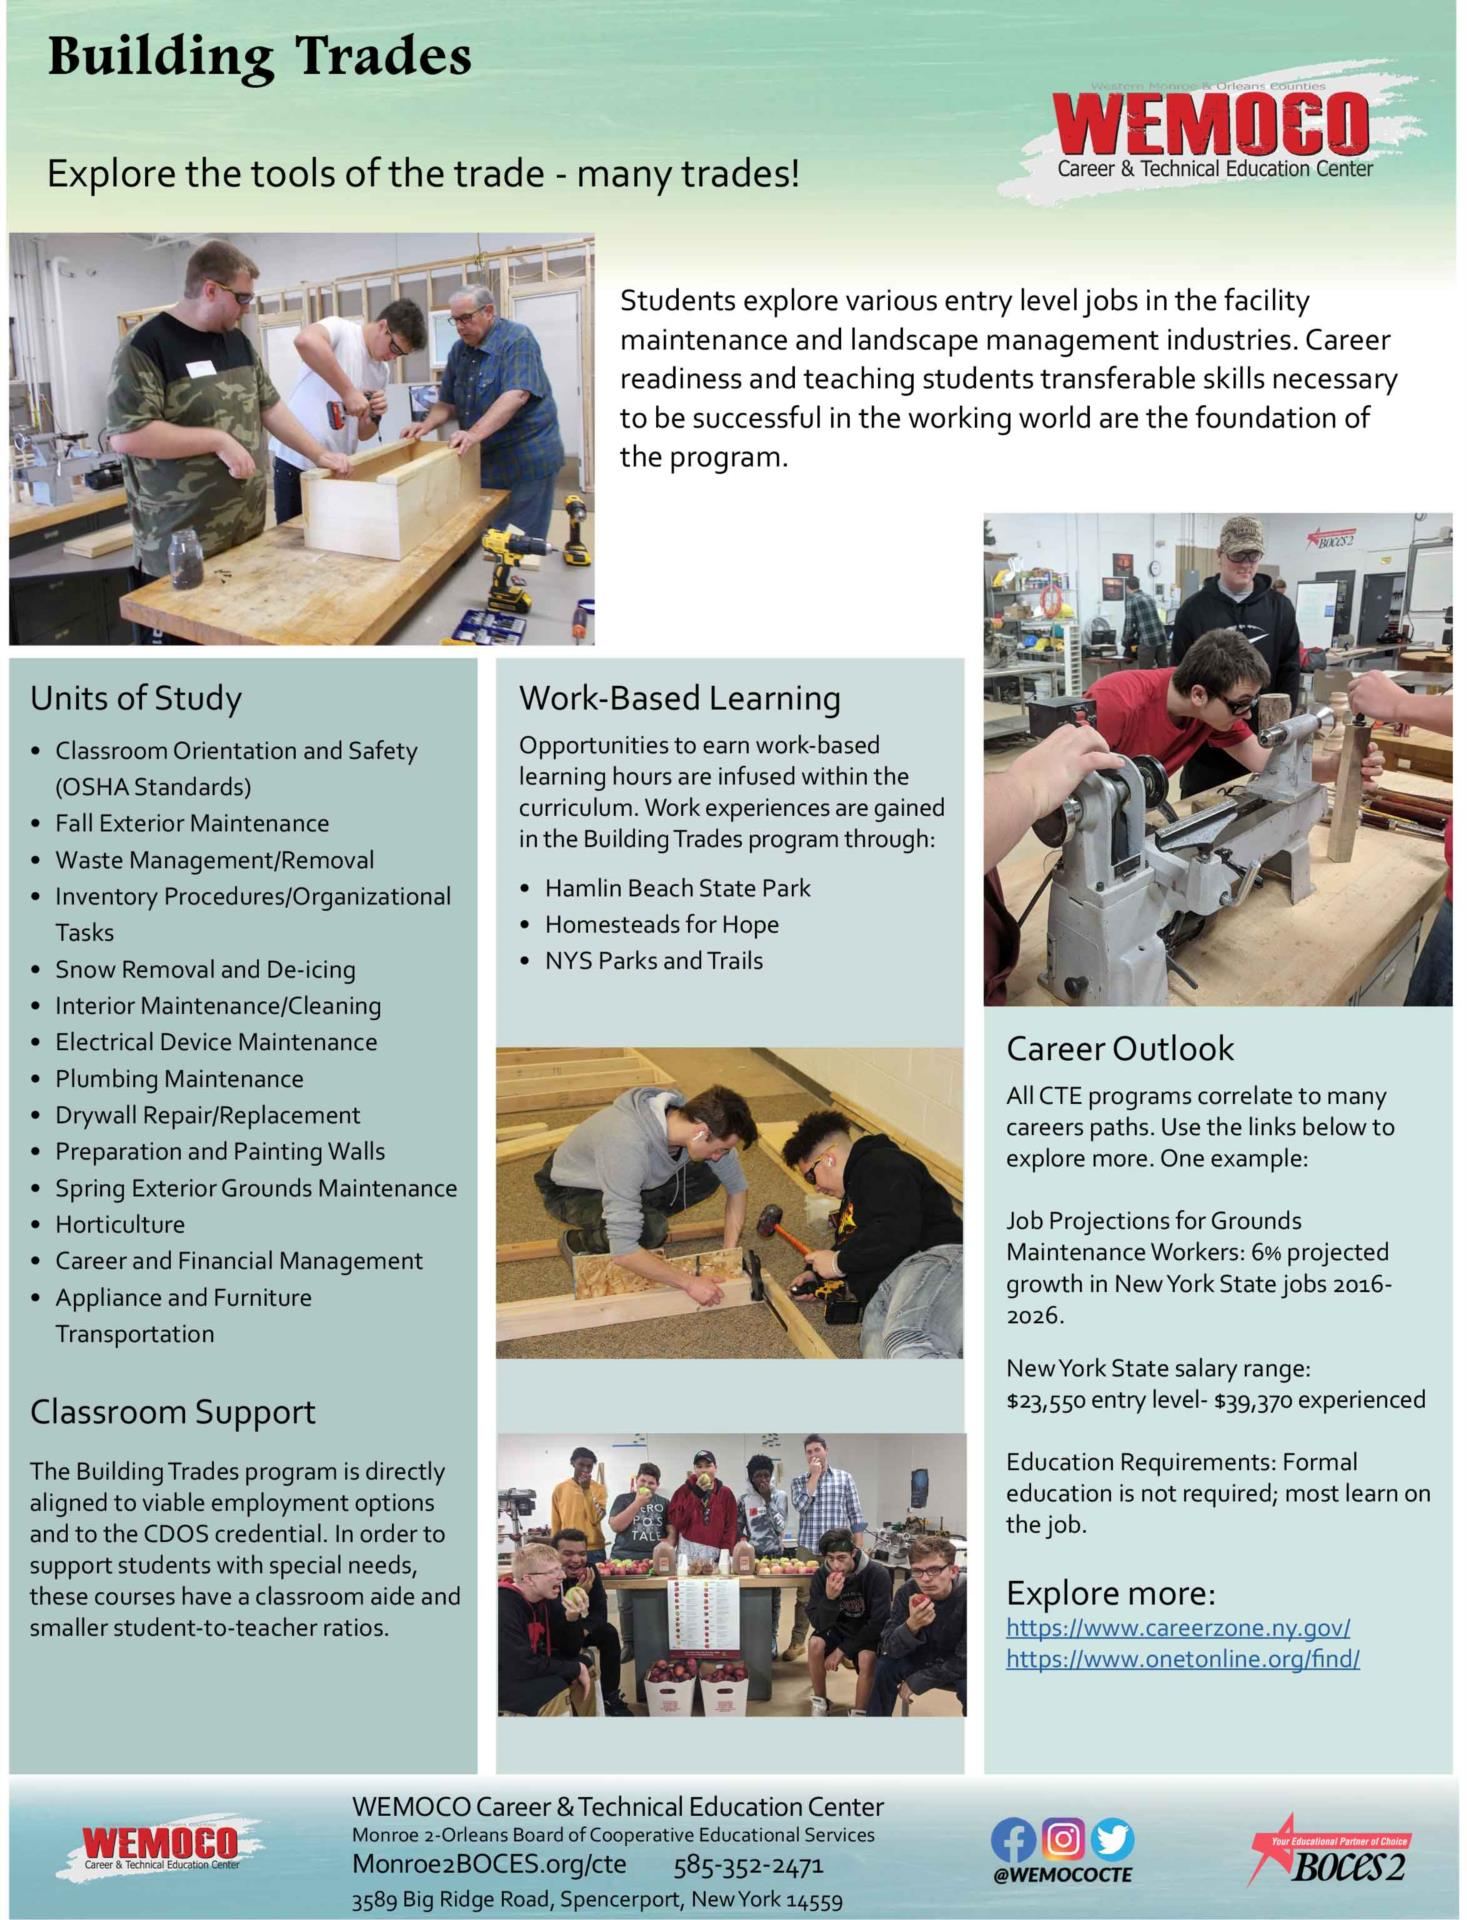 Download a PDF overview of the Building Trades program information